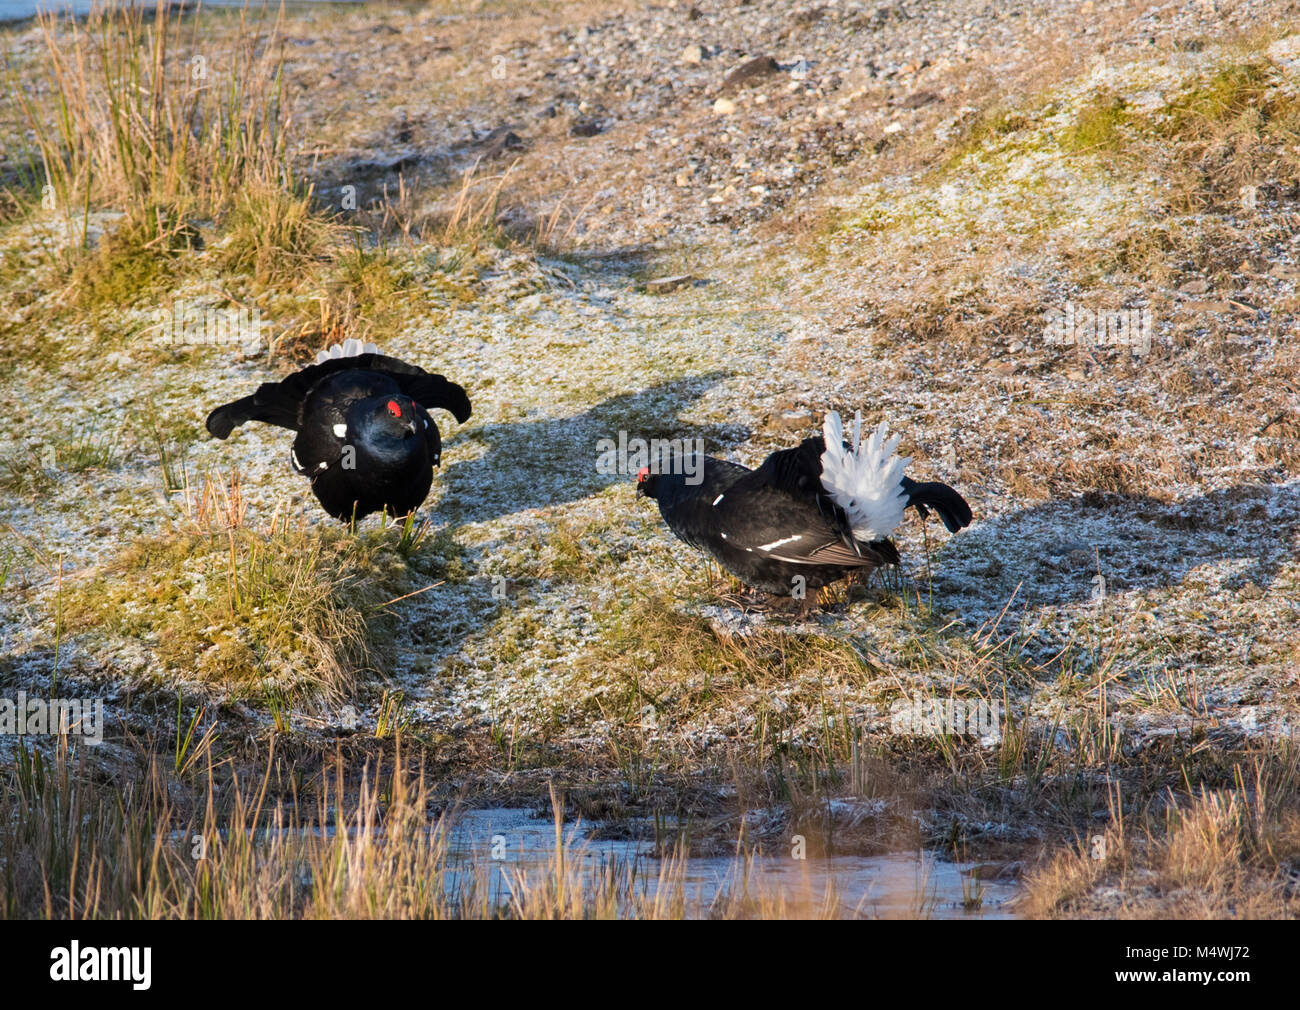 Male Black Grouse Lyrurus tetrix lekking at sunrise on a northern moorland in the UK with several blackcocks present. - Stock Image